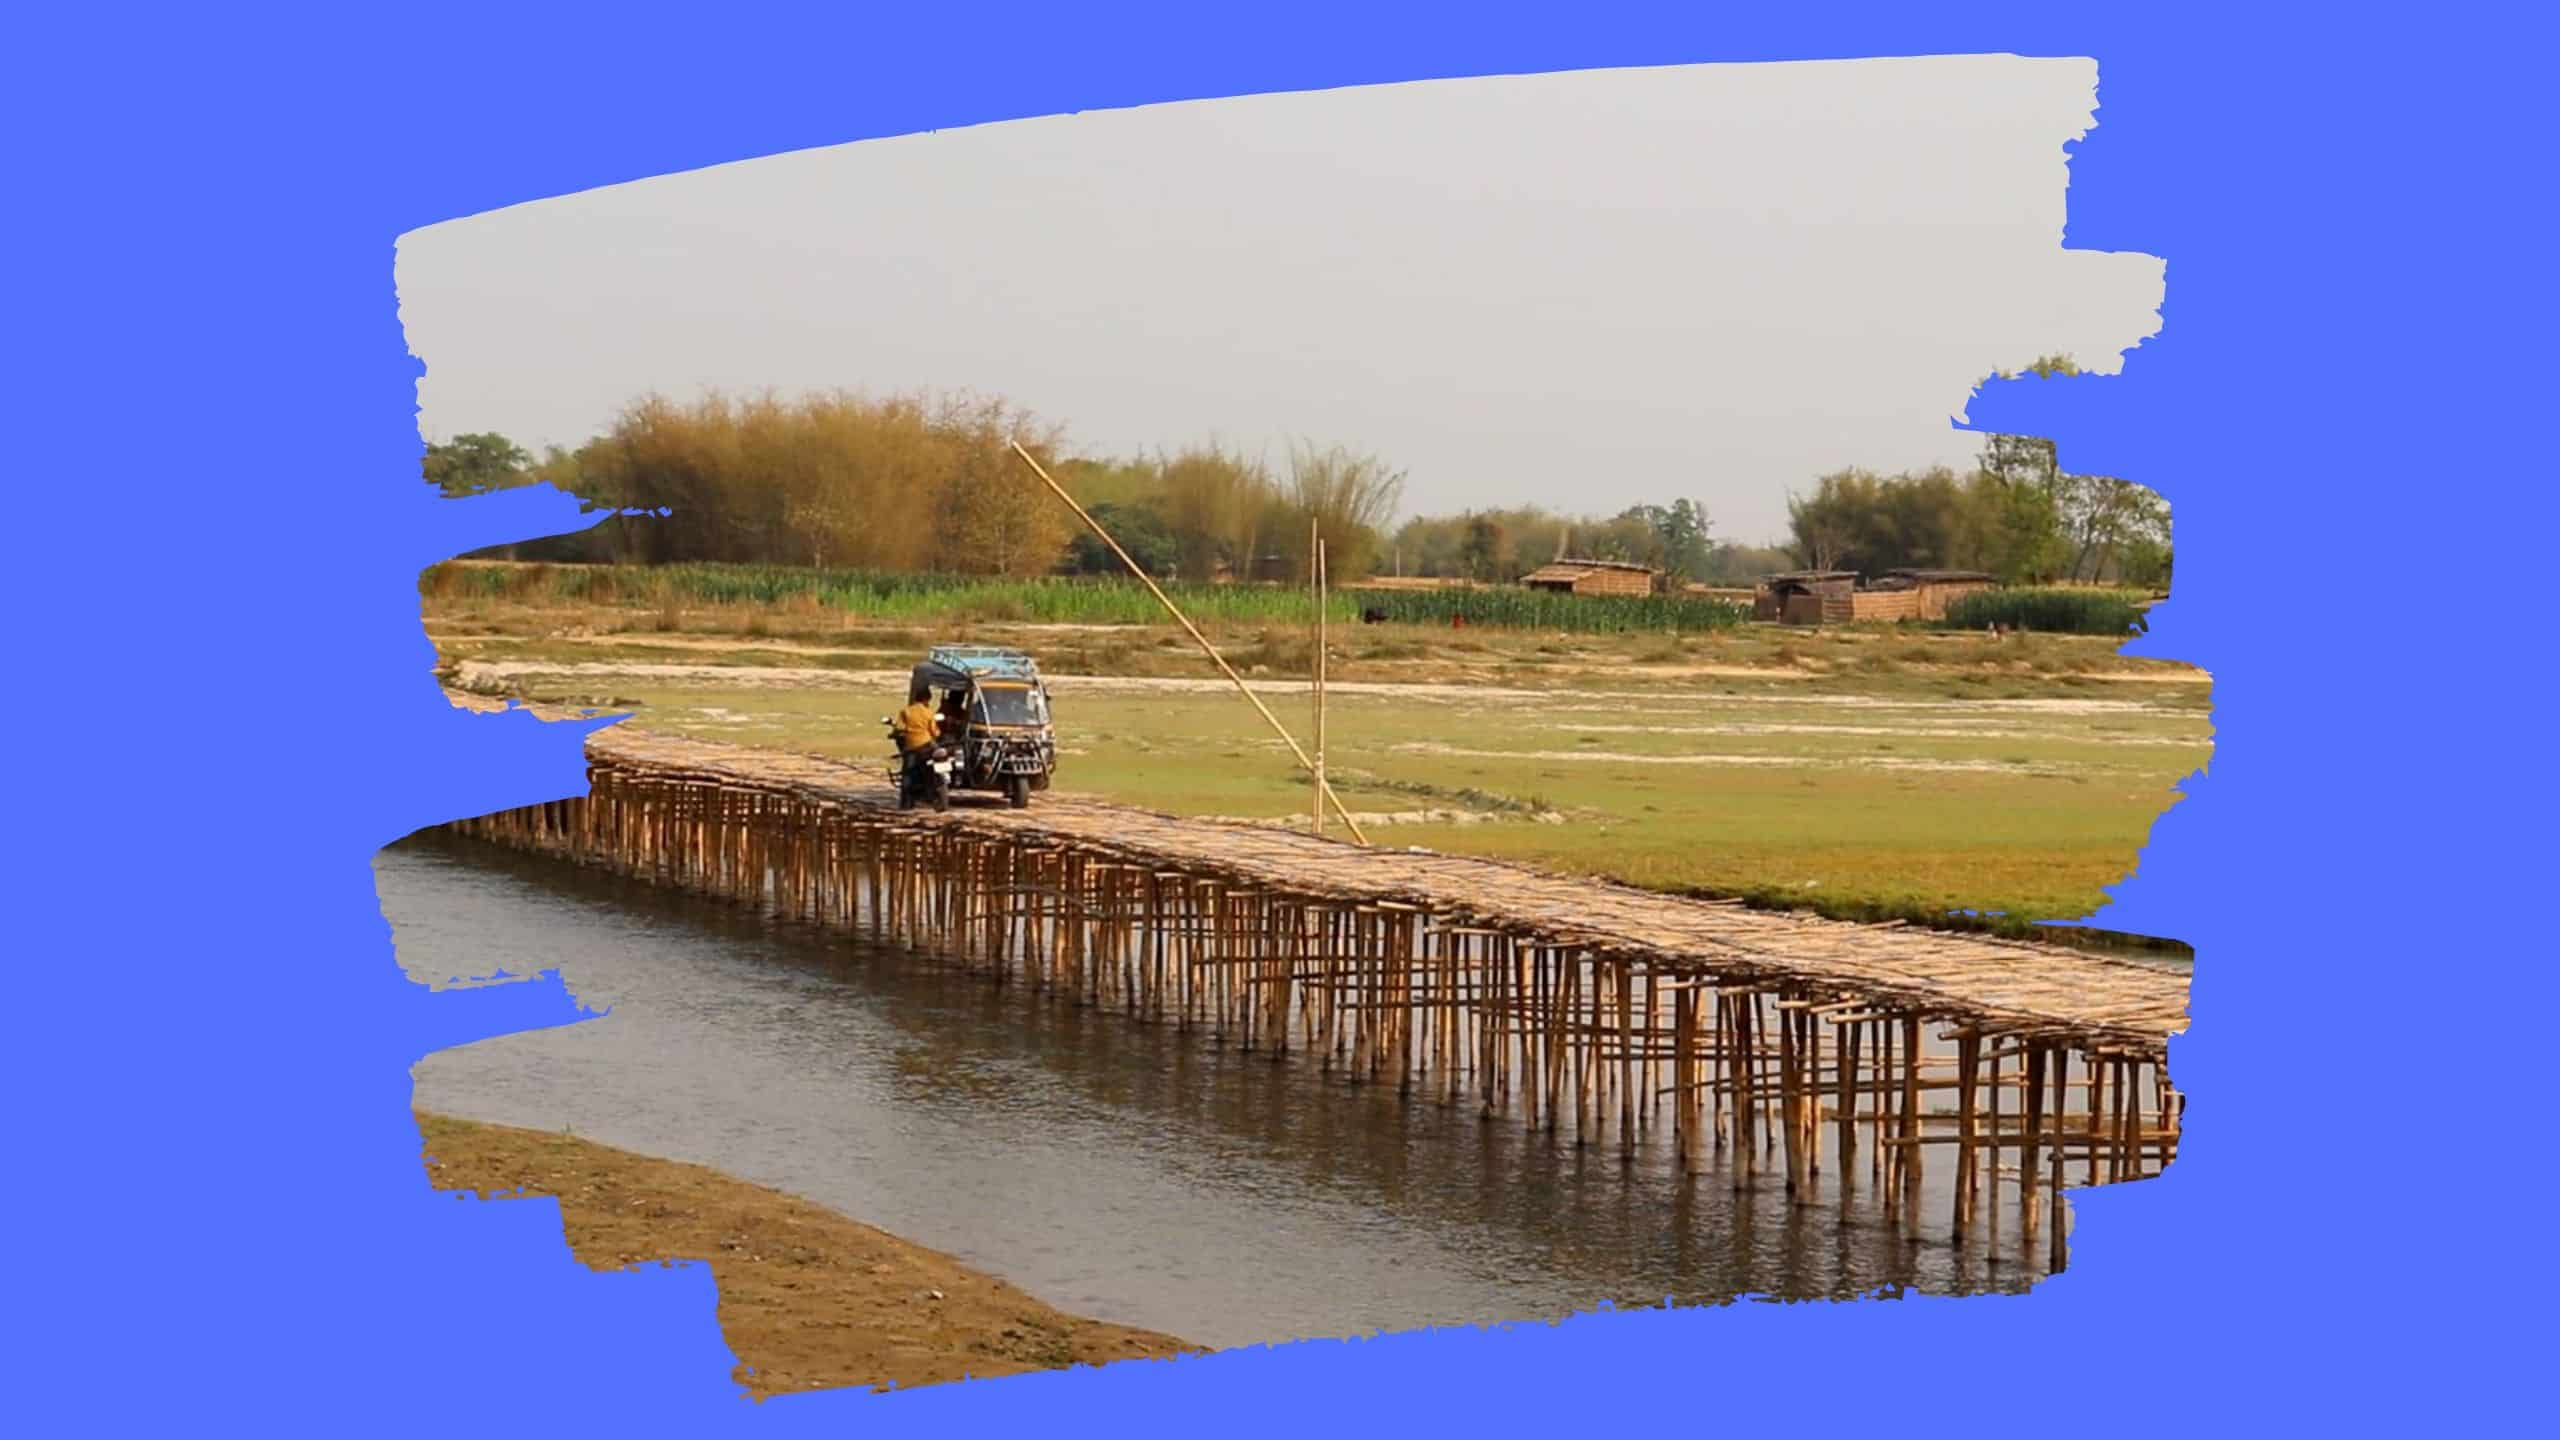 Nitish government's lies exposed on bamboo bridges in Bihar